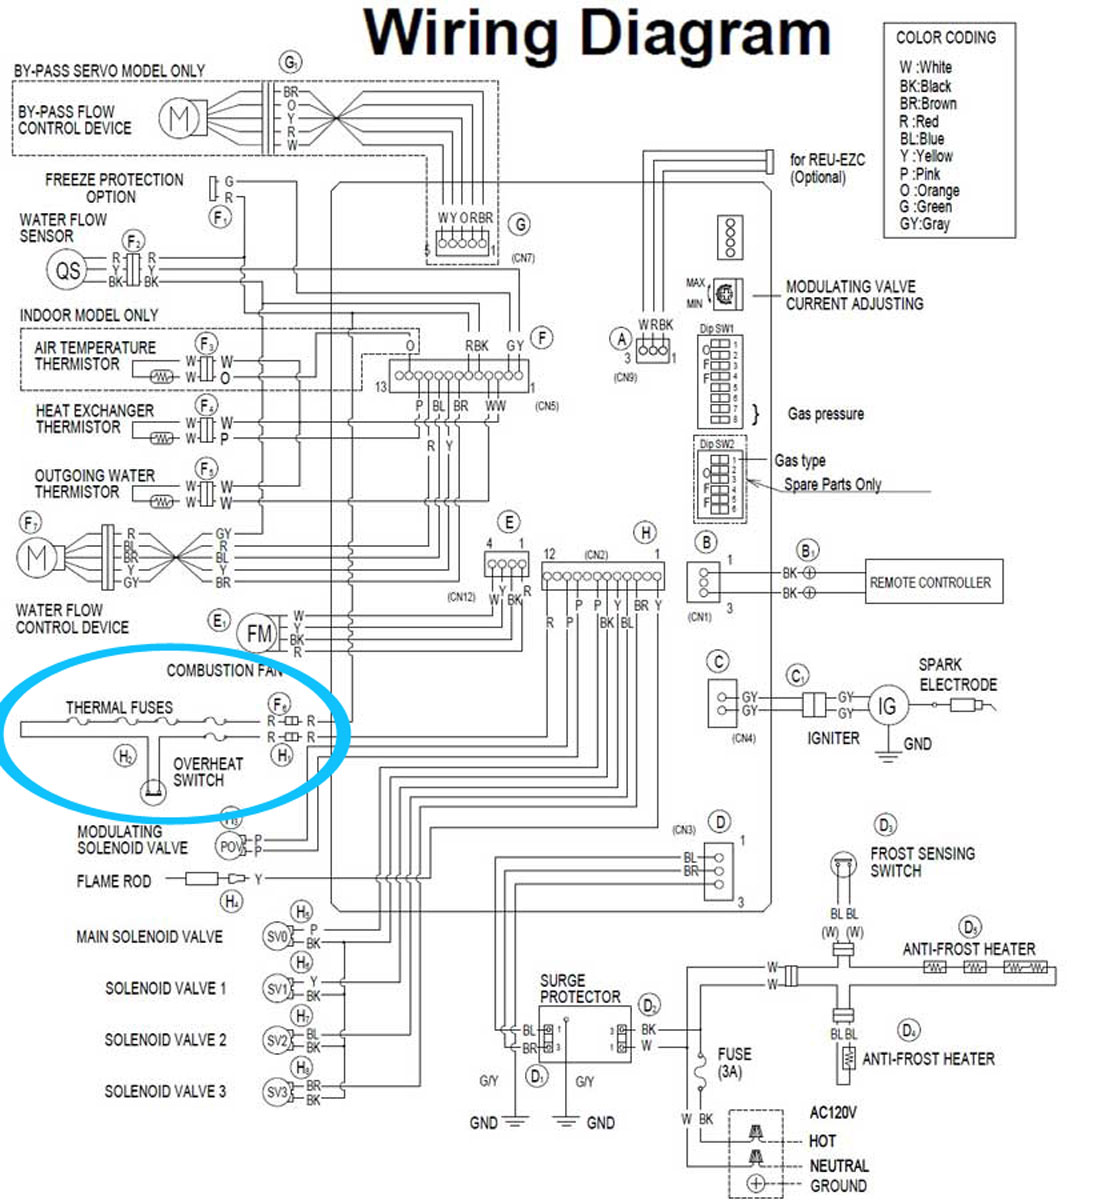 Wiring Diagram For 3 Phase Immersion Heater 3 Phase Wye